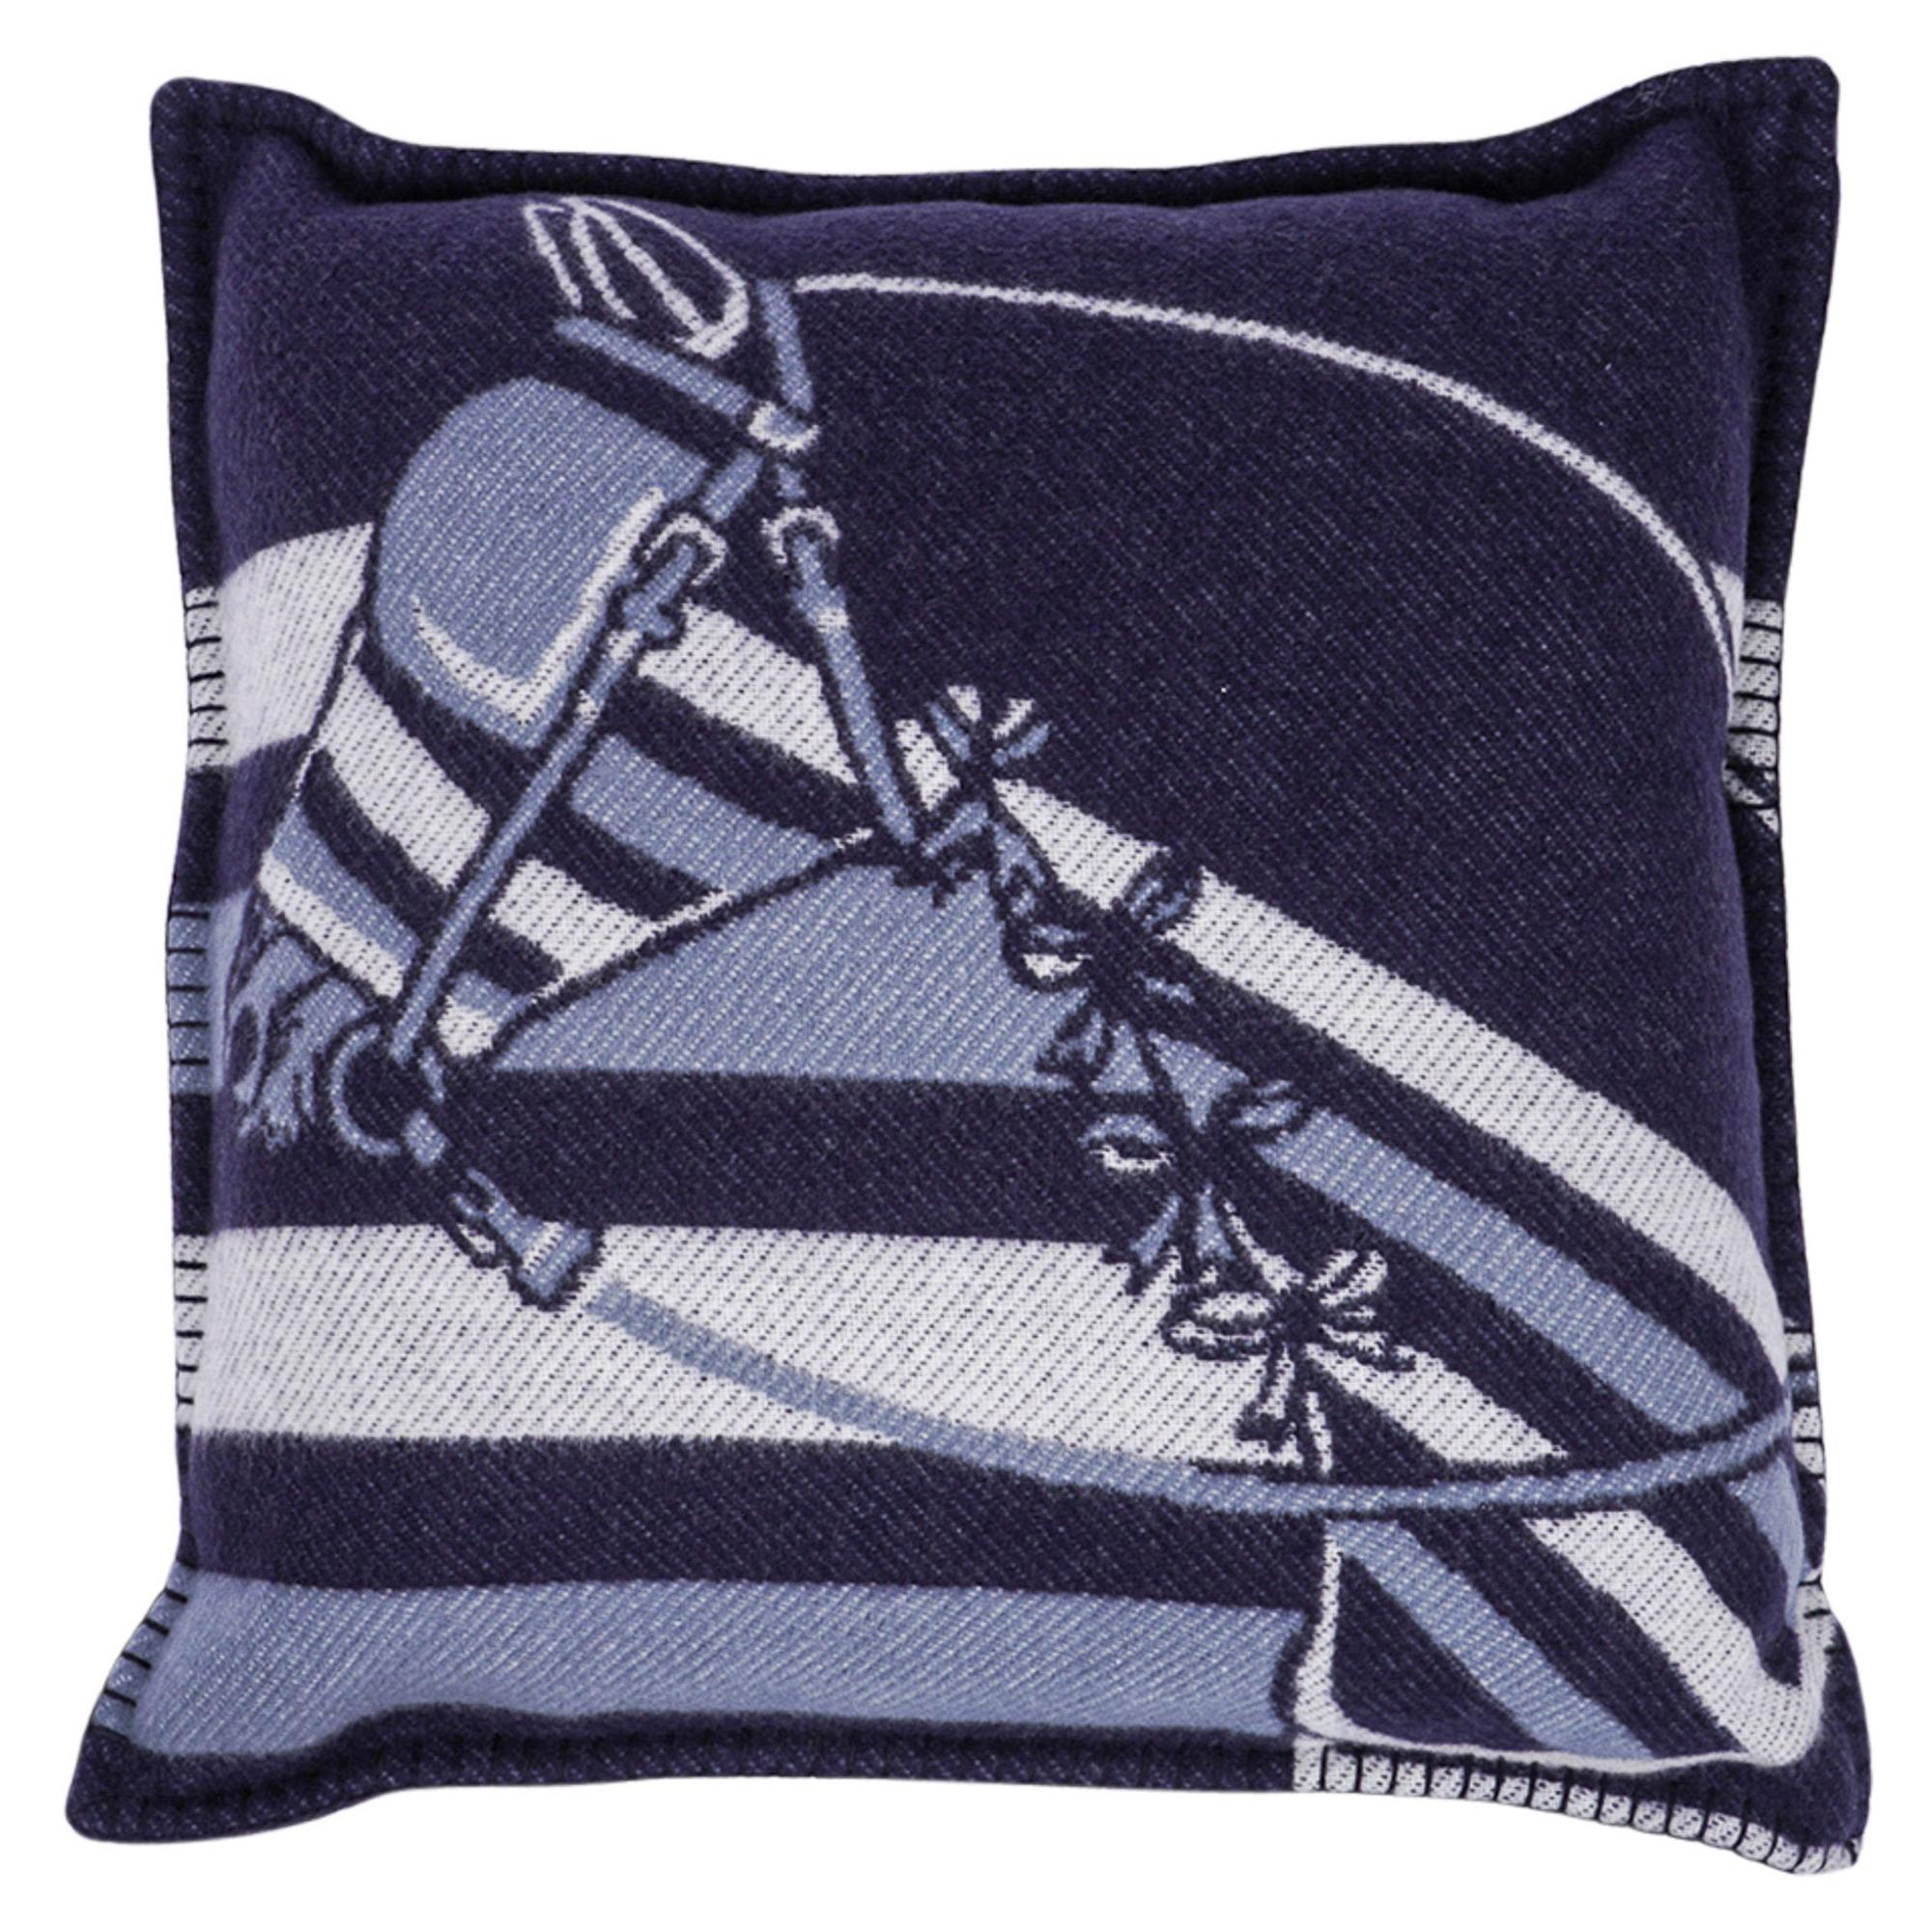 Hermes Couvertures Nouvelles Pillow Marine Limited Edition Throw Cushion New